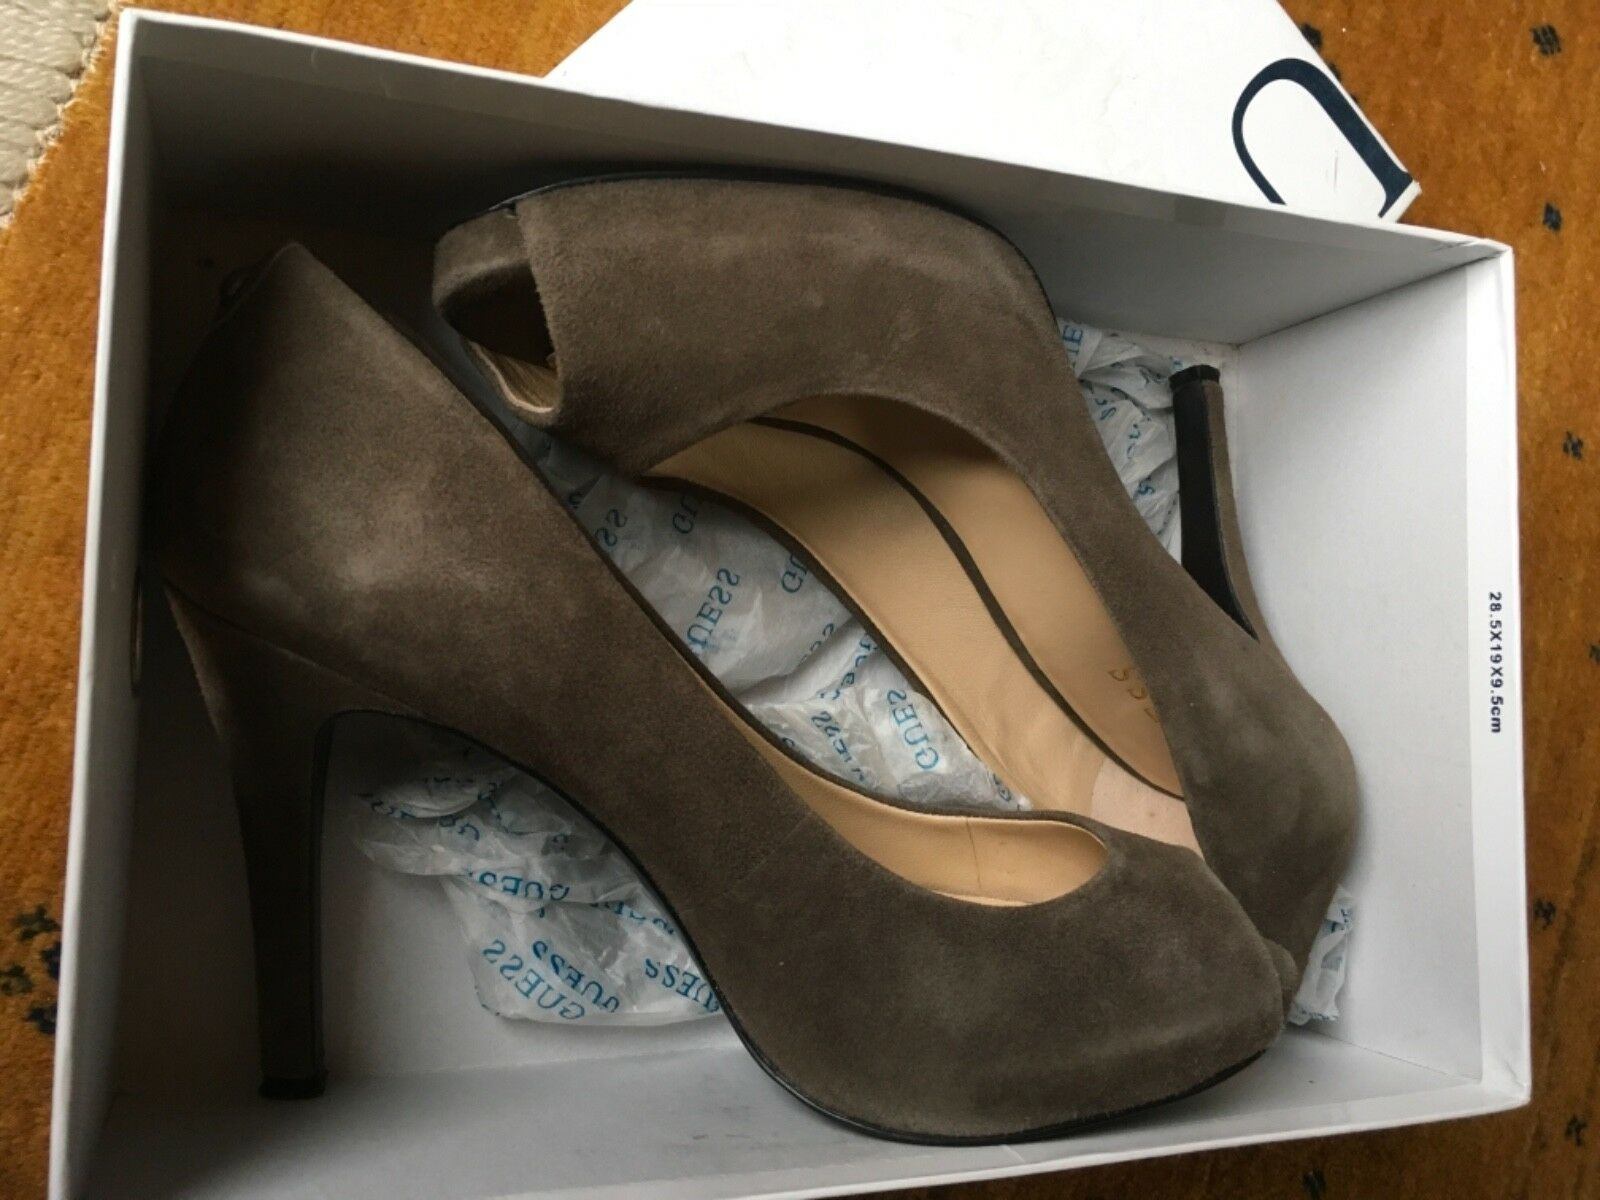 Chaussures femmes CON TACCO GUESS TG 40   CouleurE BEIGE TORTORA